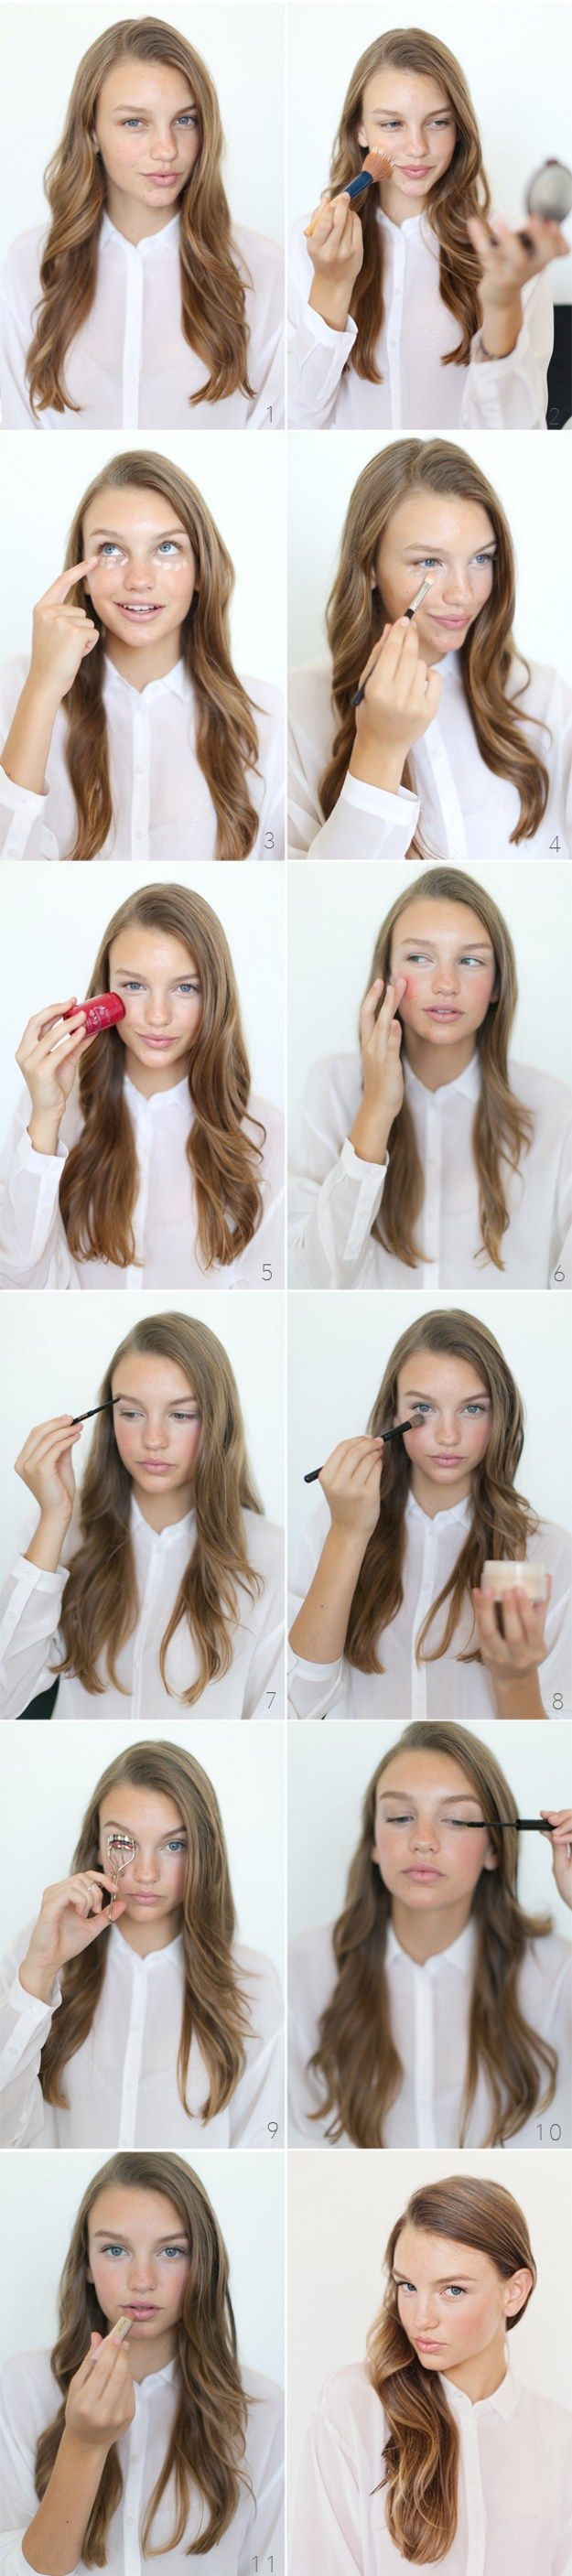 15 10 Minute Makeup Tutorials For Work